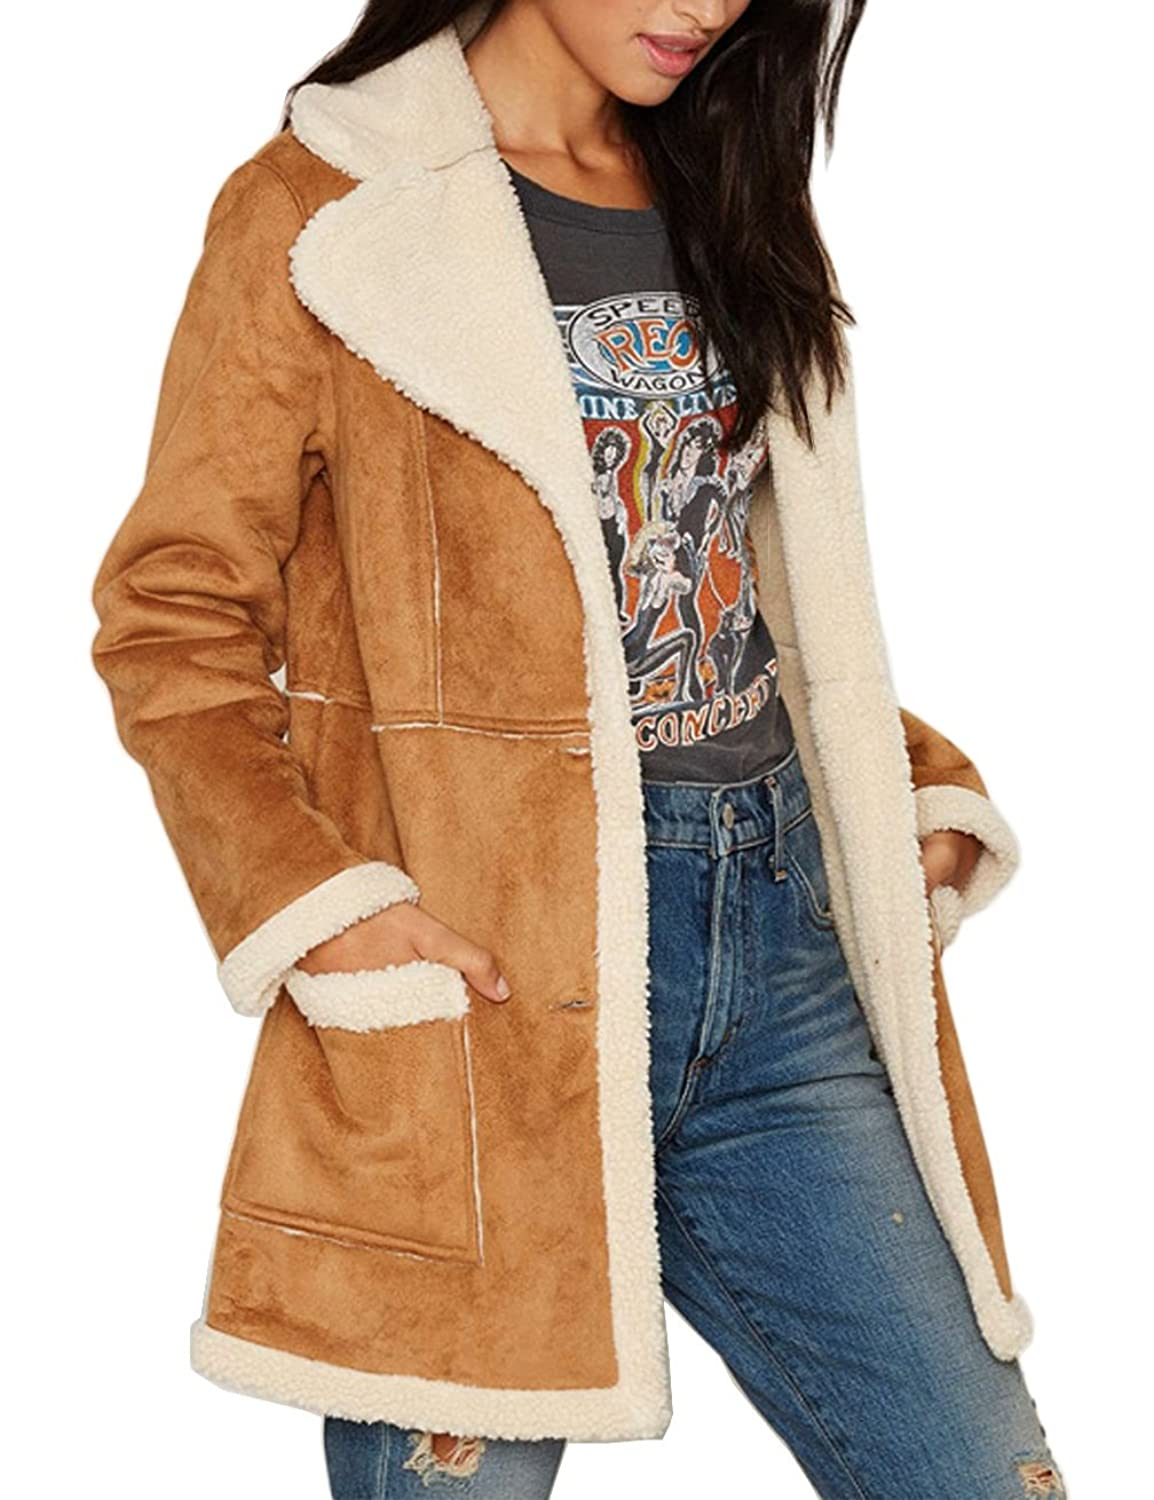 Womens suede jackets coats